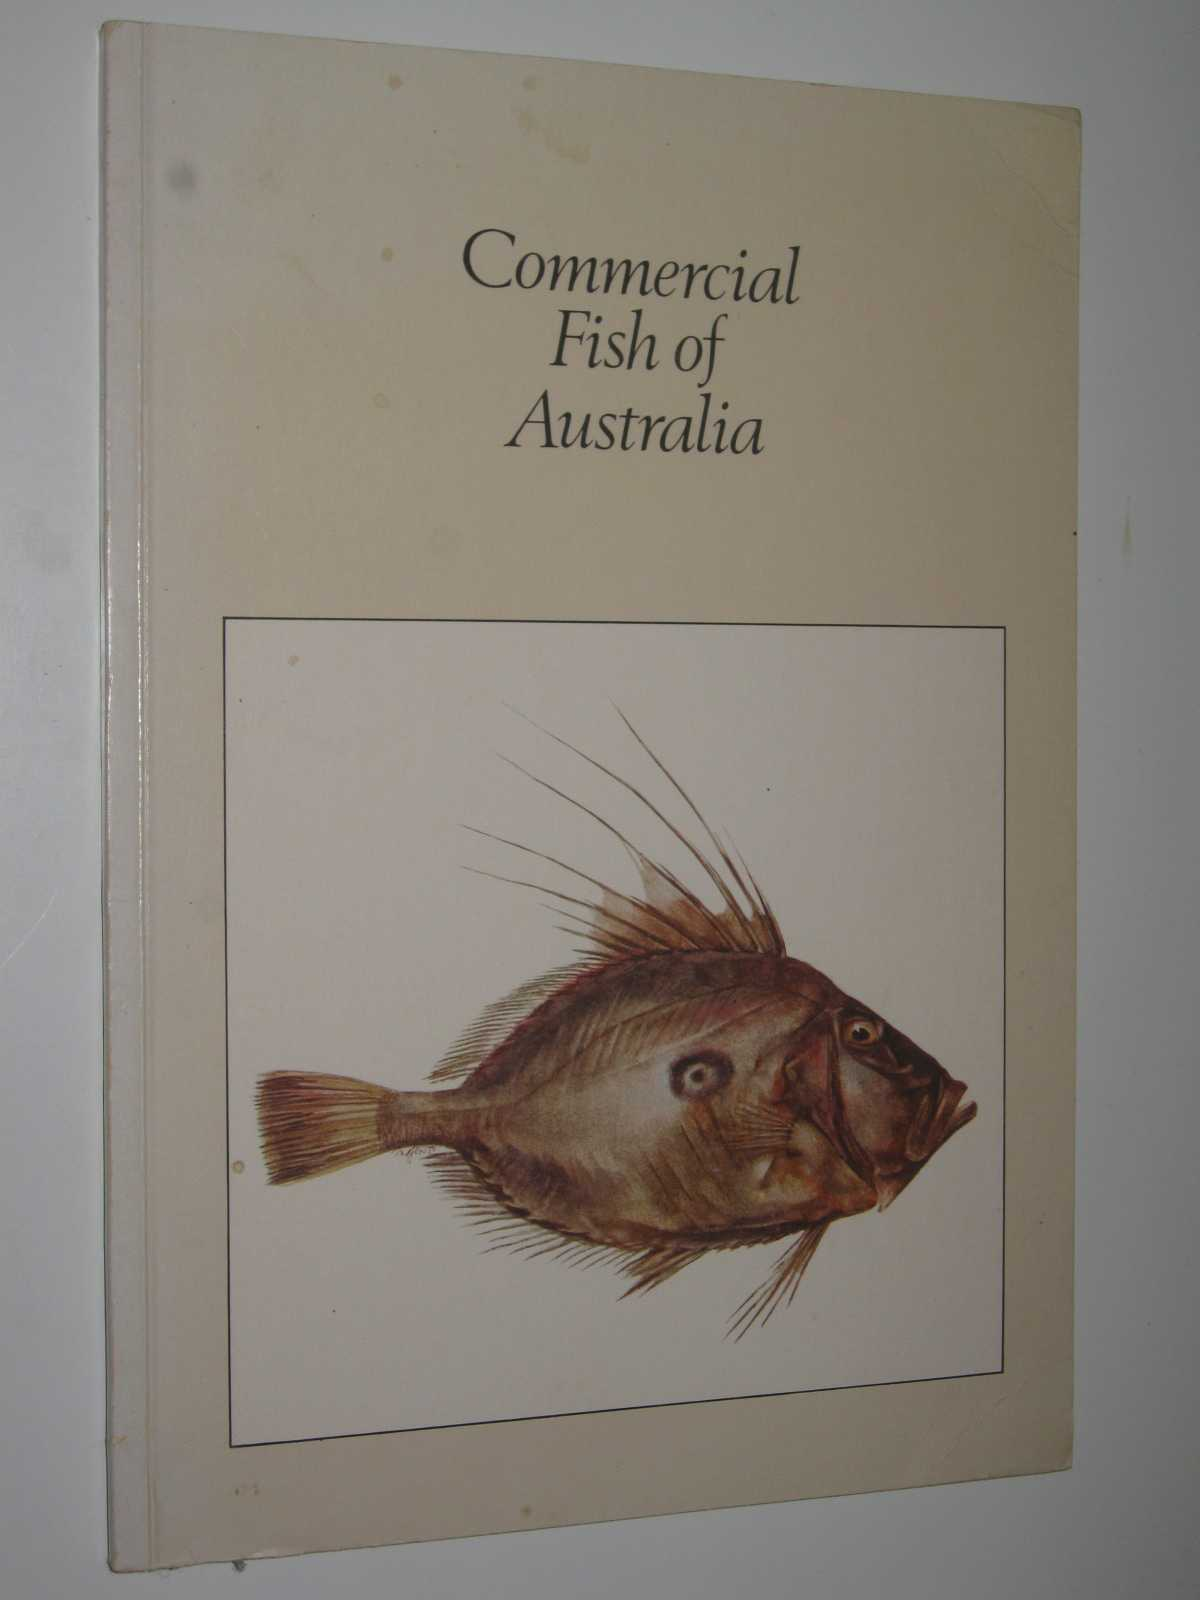 Commercial Fish of Australia, Author Not Stated